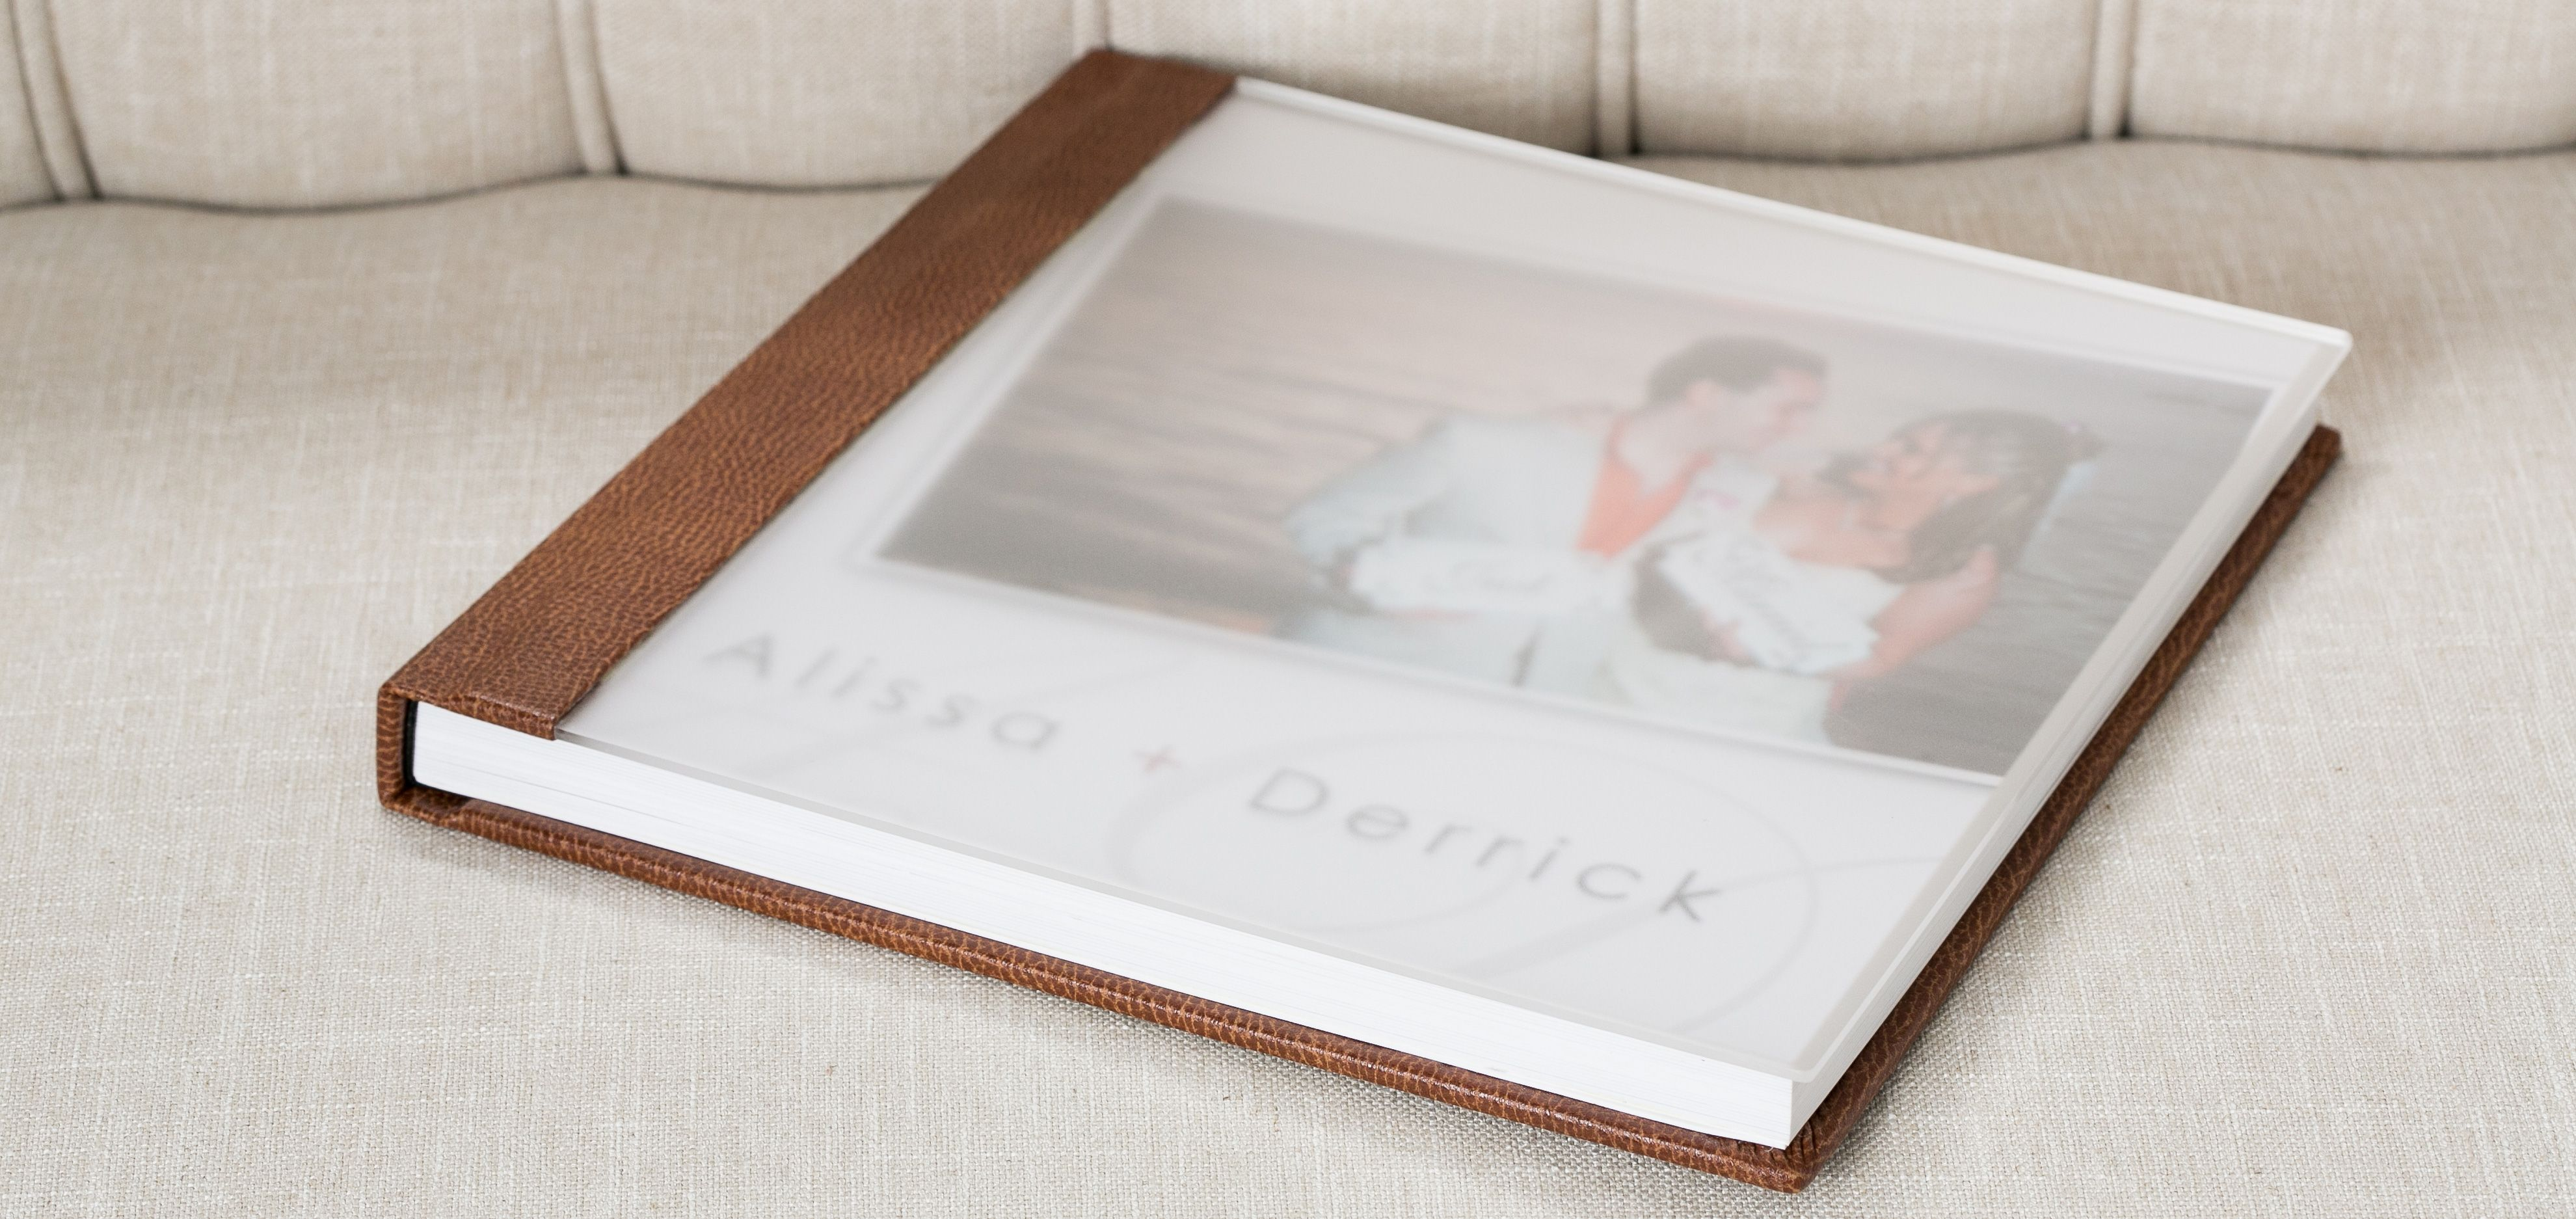 Frosted see thru cover flush mount wedding album fizara diy albums frosted see thru cover flush mount wedding album fizara diy albums solutioingenieria Image collections